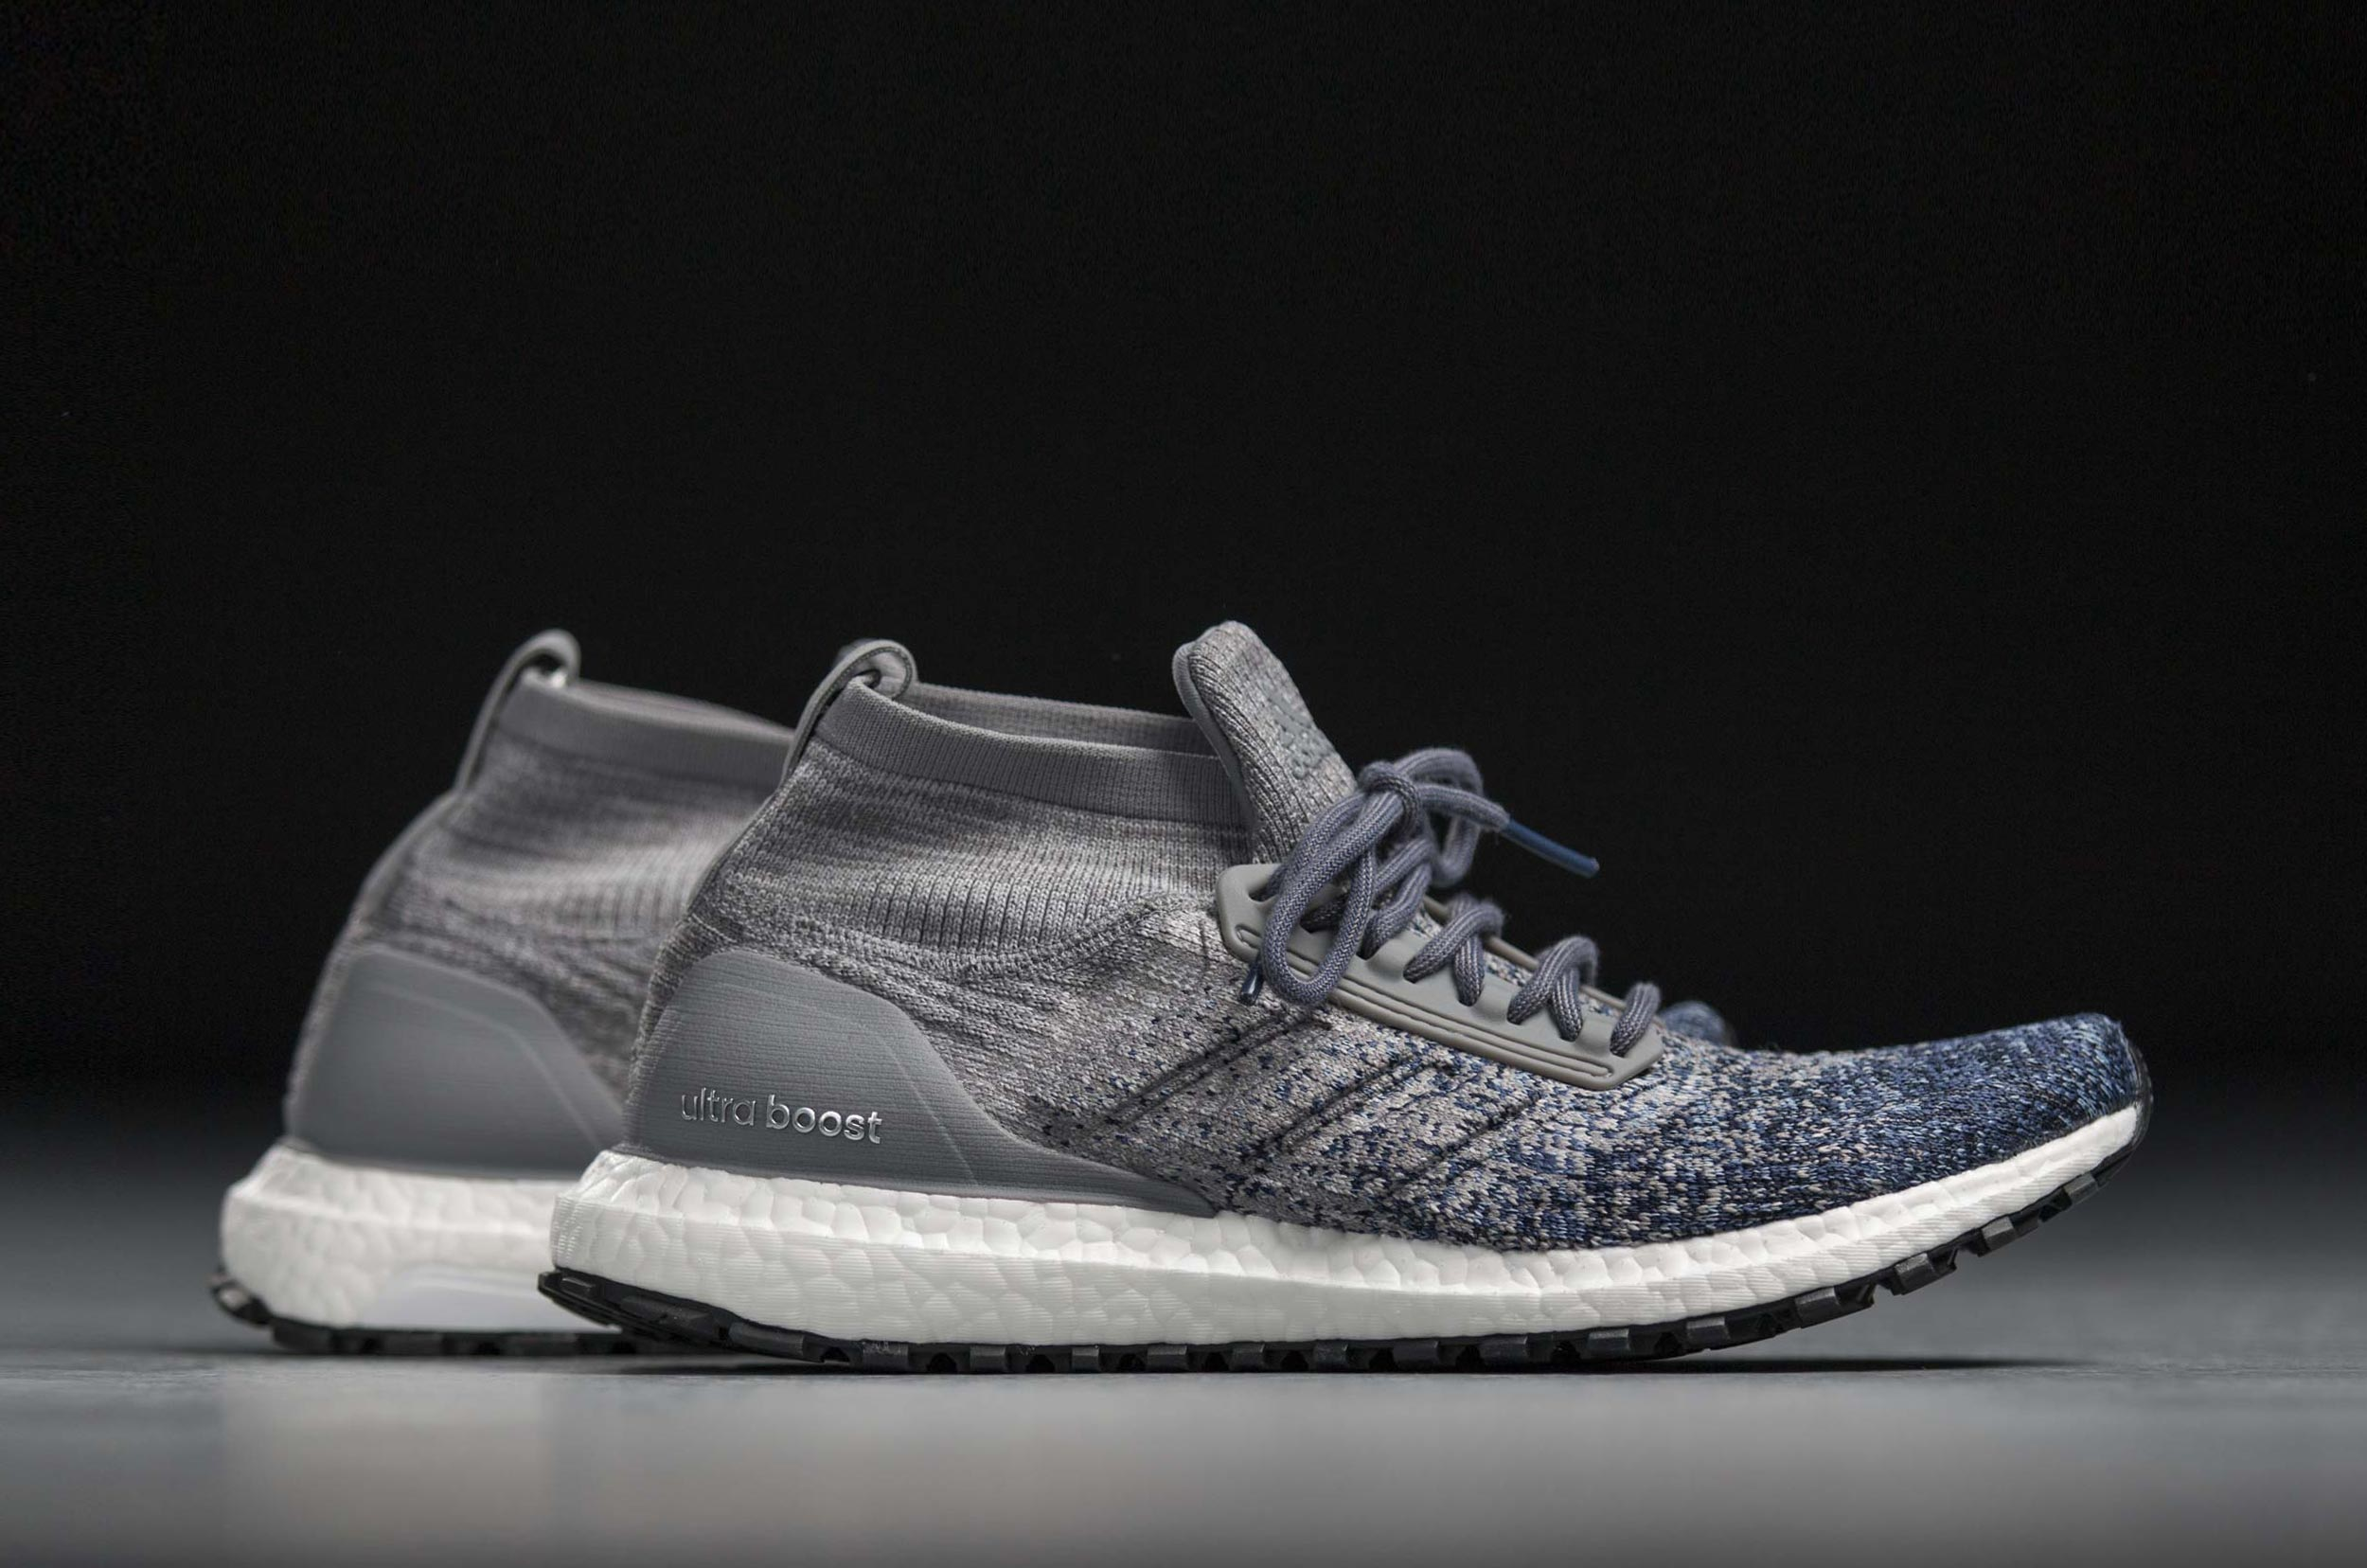 Adidas performance ultraboost tutto terreno bb6128 Γκρί